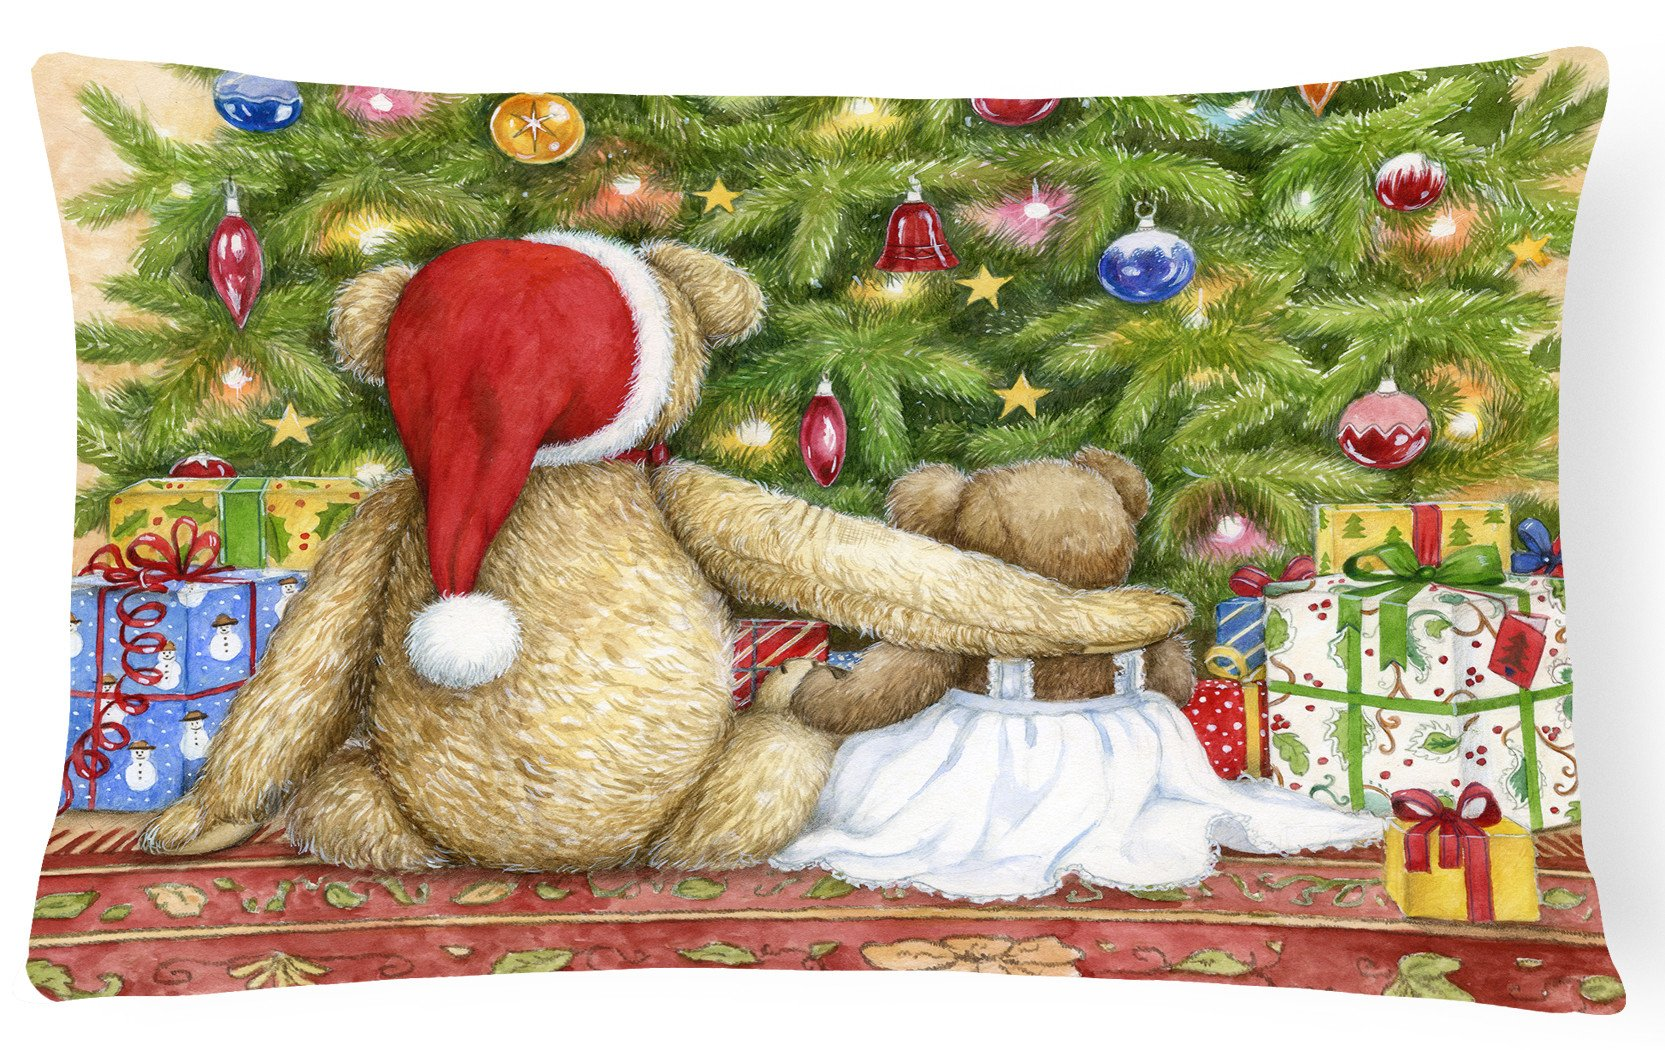 Christmas Teddy Bears with Tree Fabric Decorative Pillow CDCO0415PW1216 by Caroline's Treasures